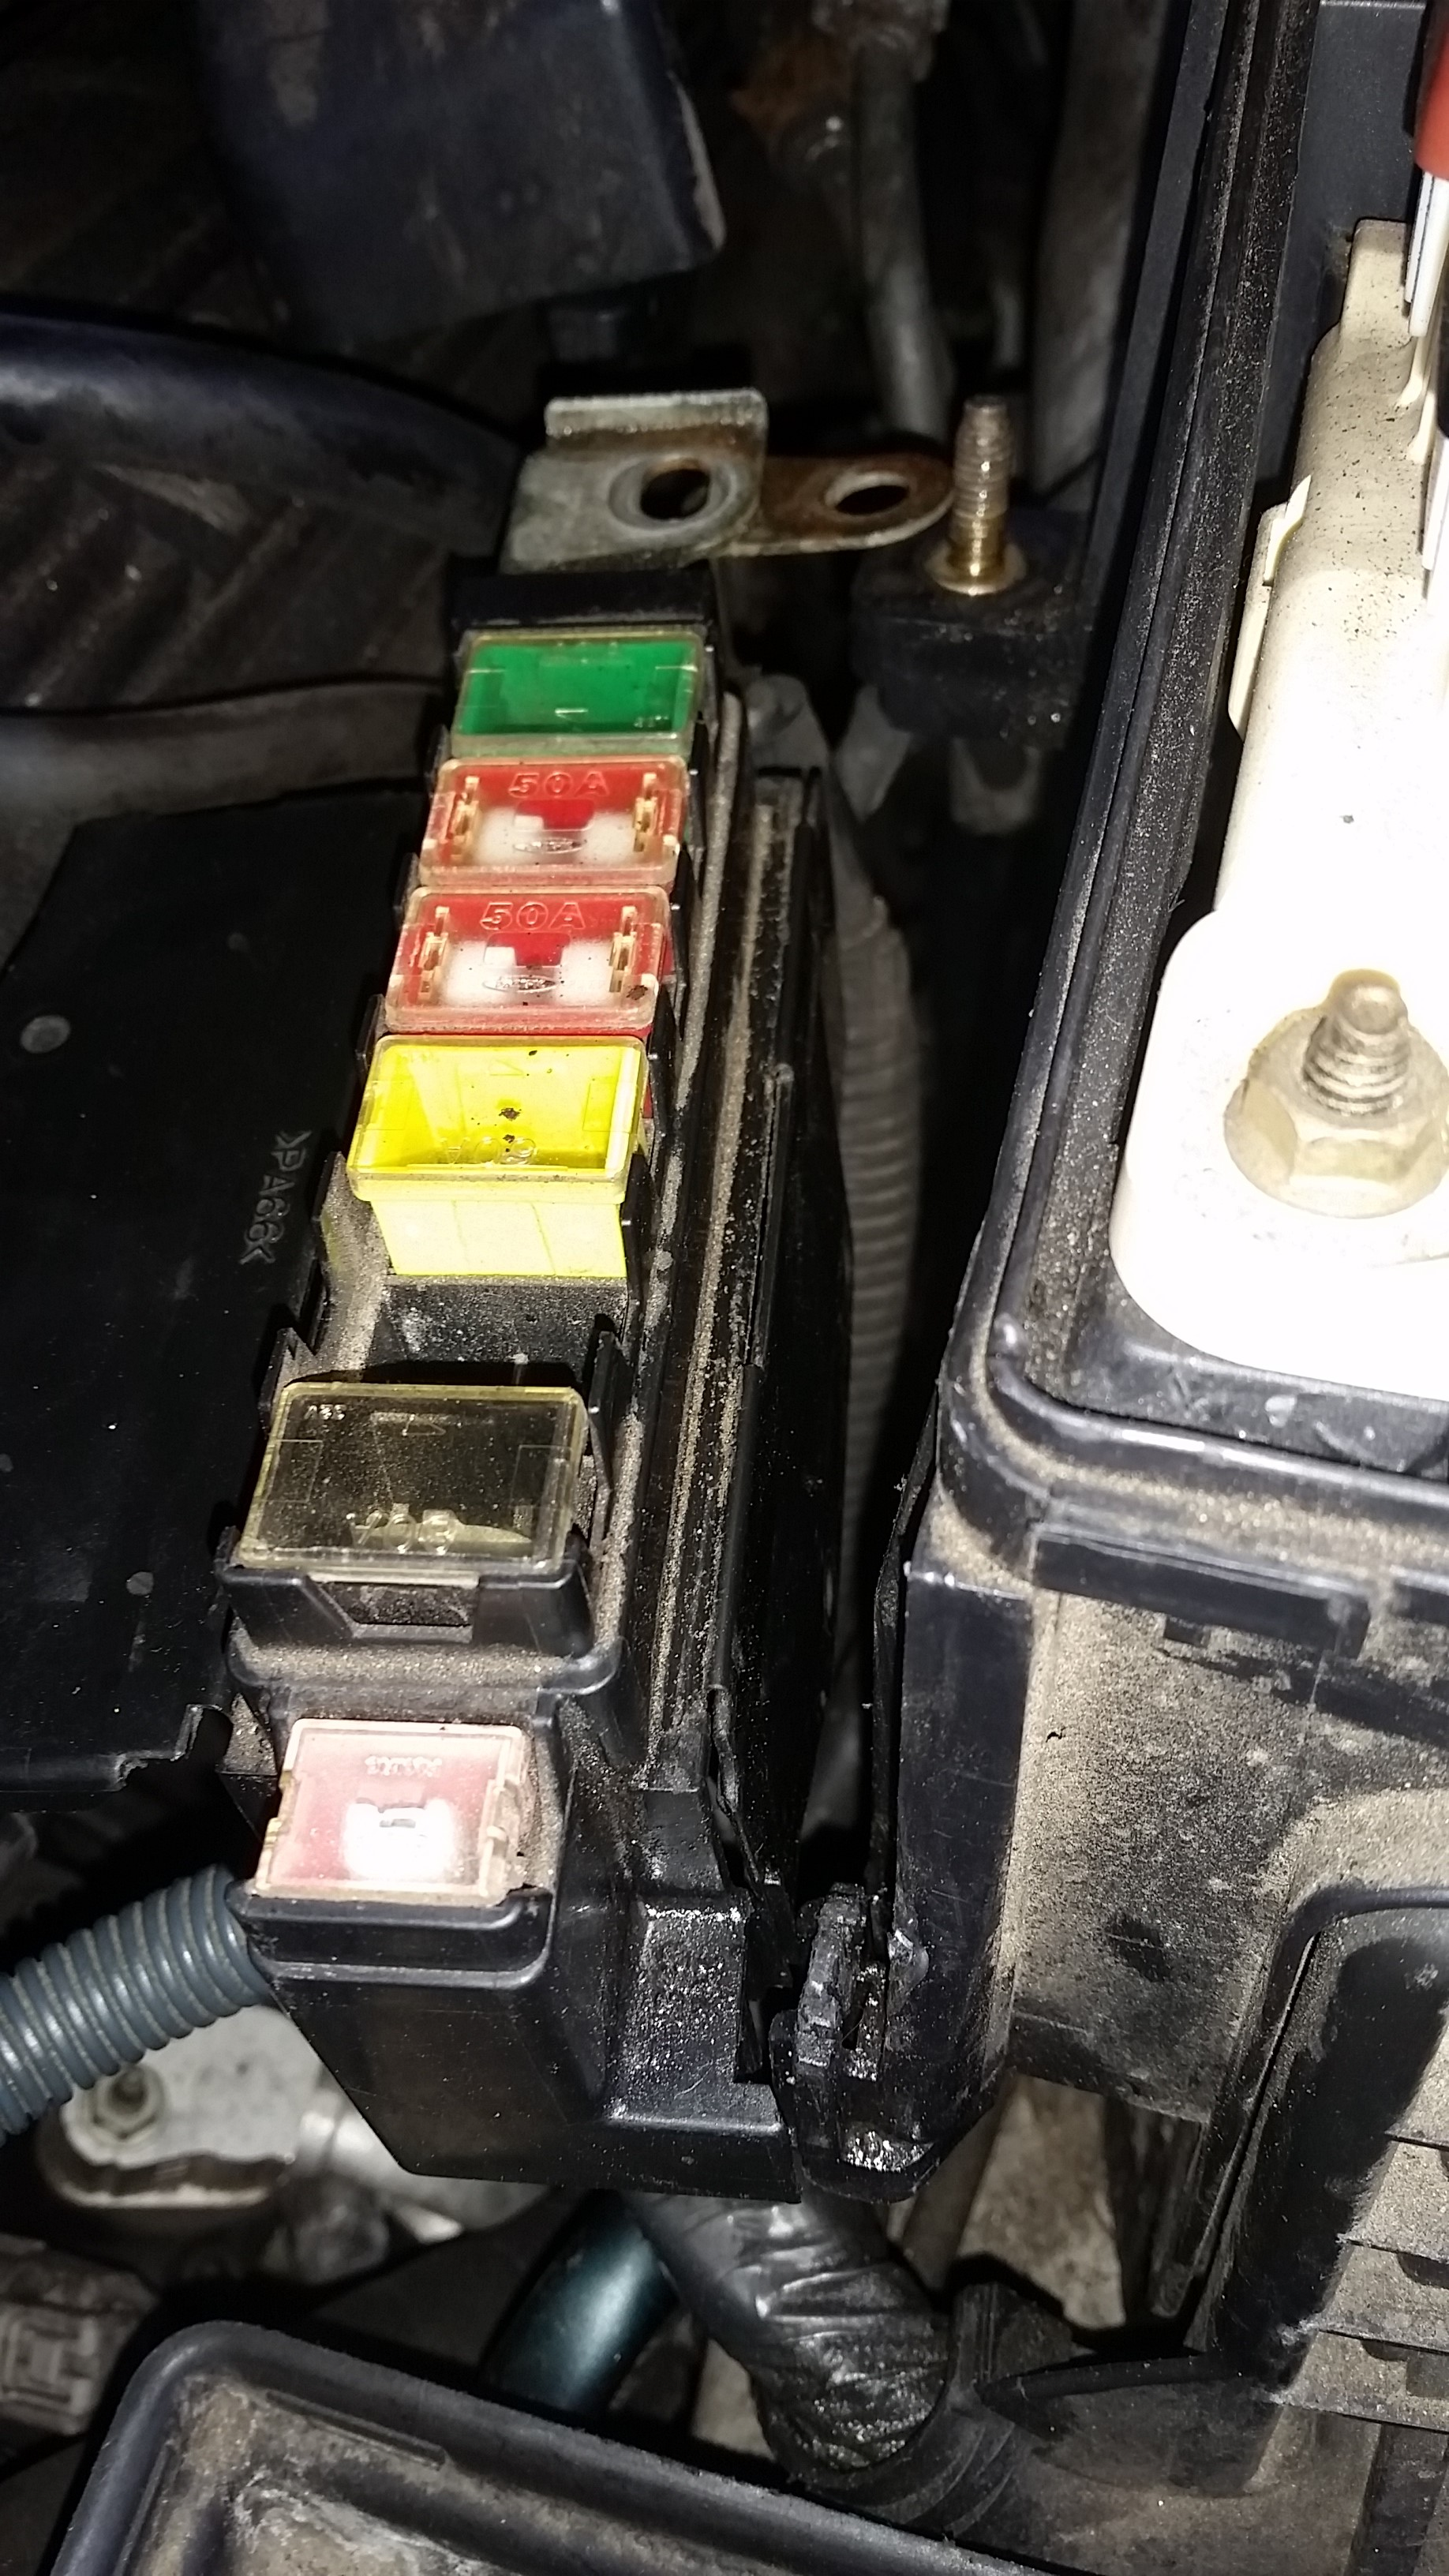 [DIAGRAM_34OR]  98C Fuse Box 1990 Lexus Ls400 | Wiring Library | Lexus Ls400 Fuse Box |  | Wiring Library